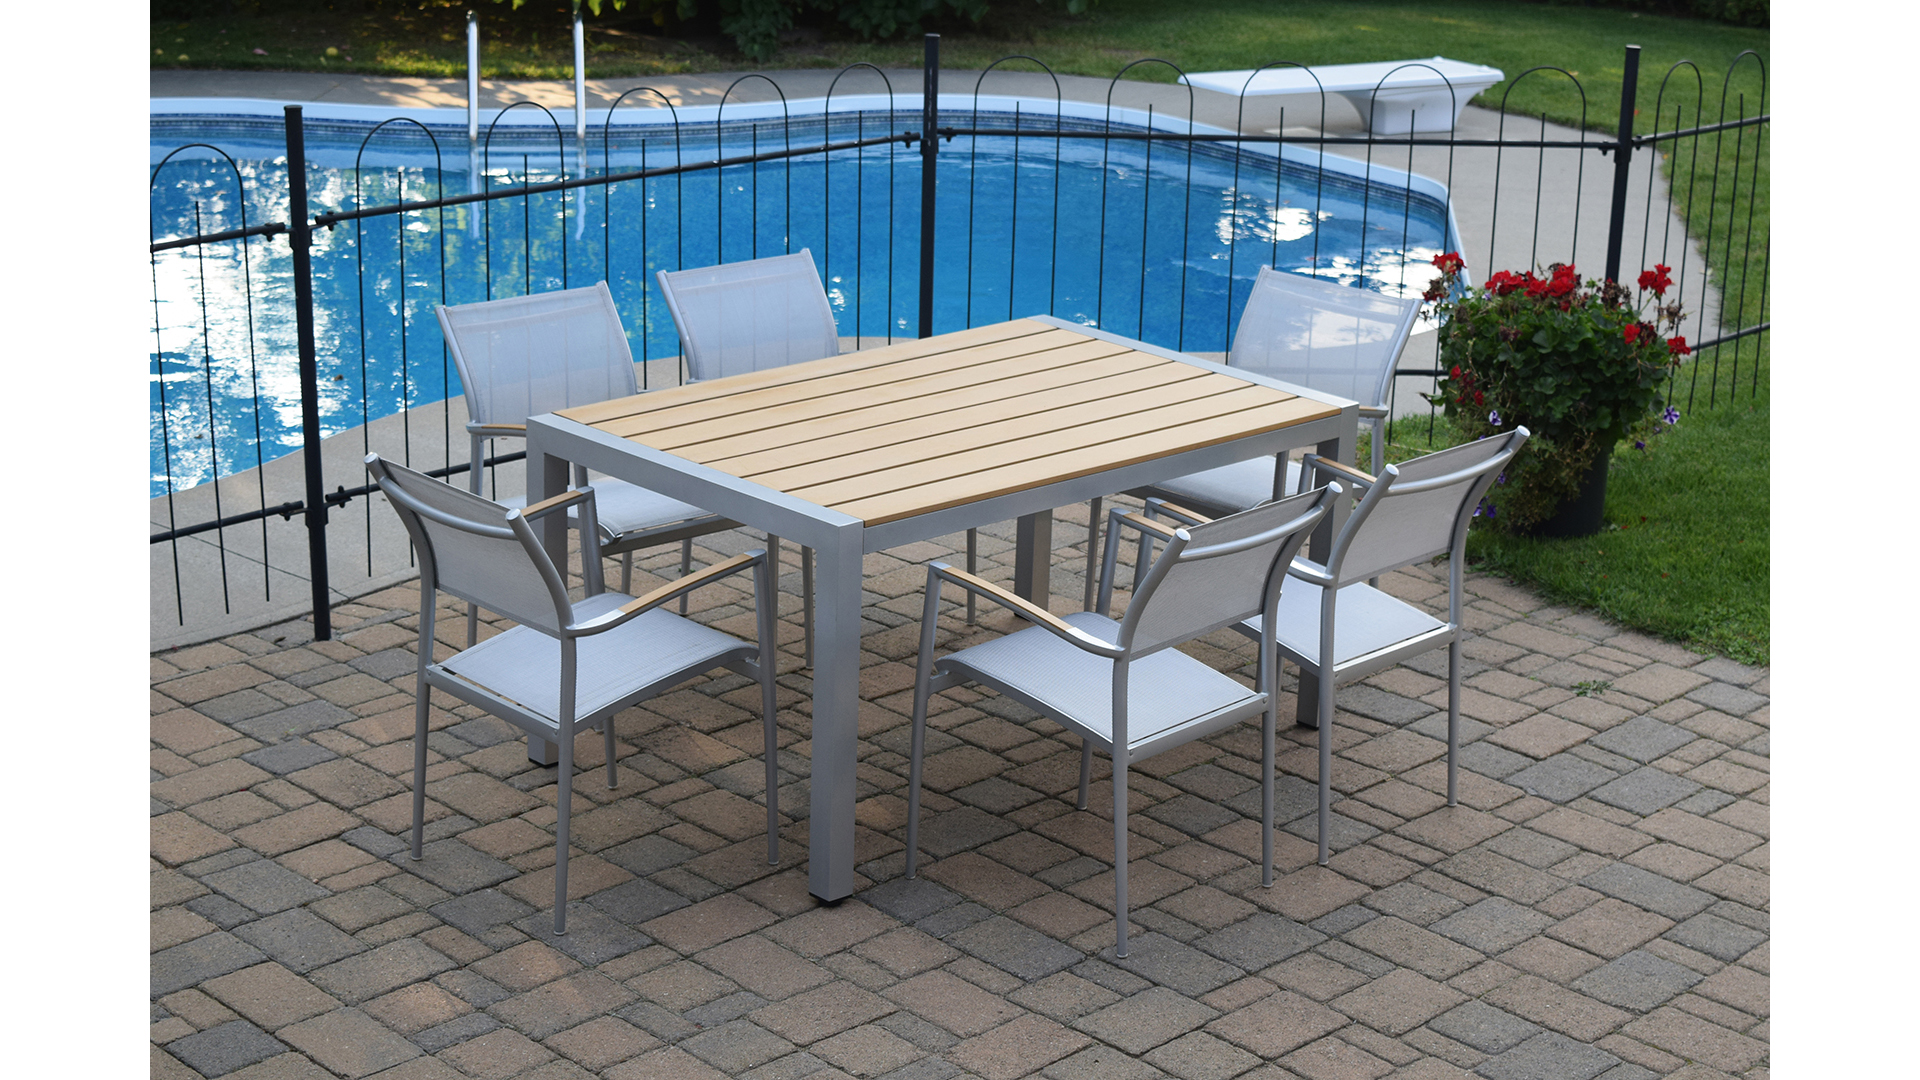 7 Piece Chairs And Patio Table For Outdoor Dining Poolside.jpg